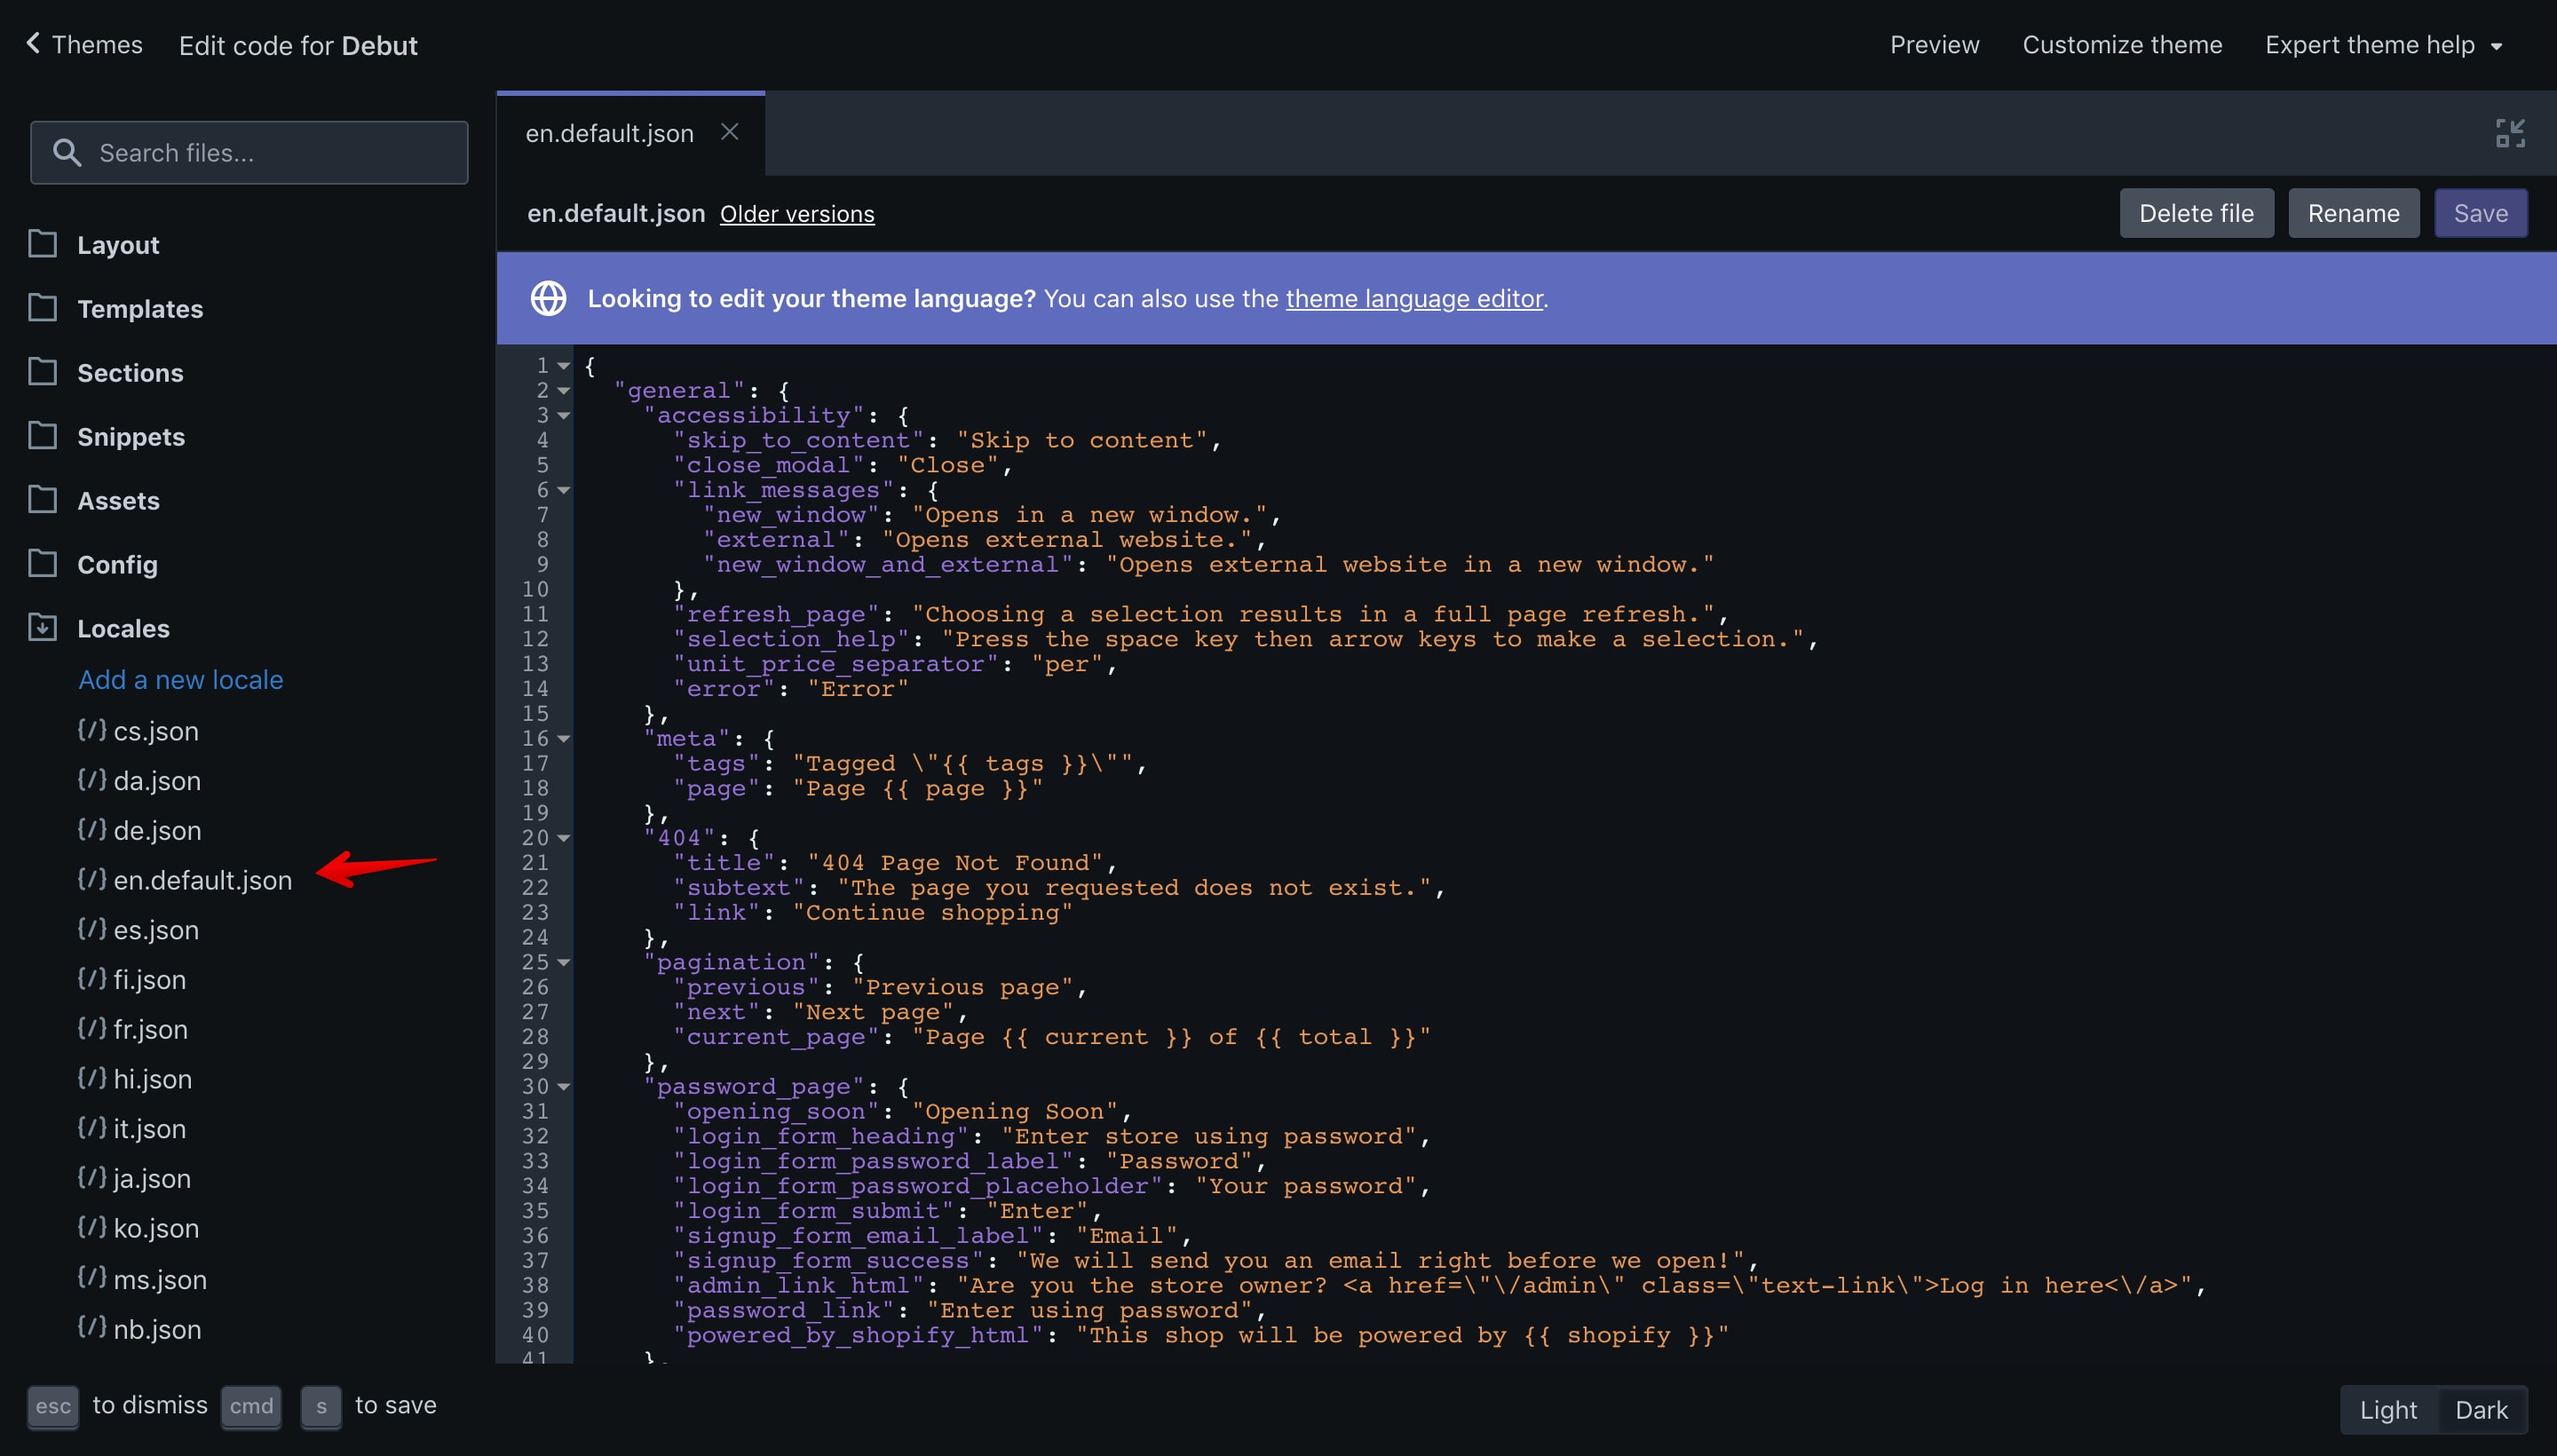 """Debut theme """"en.default.json"""" file opened in the code editor."""